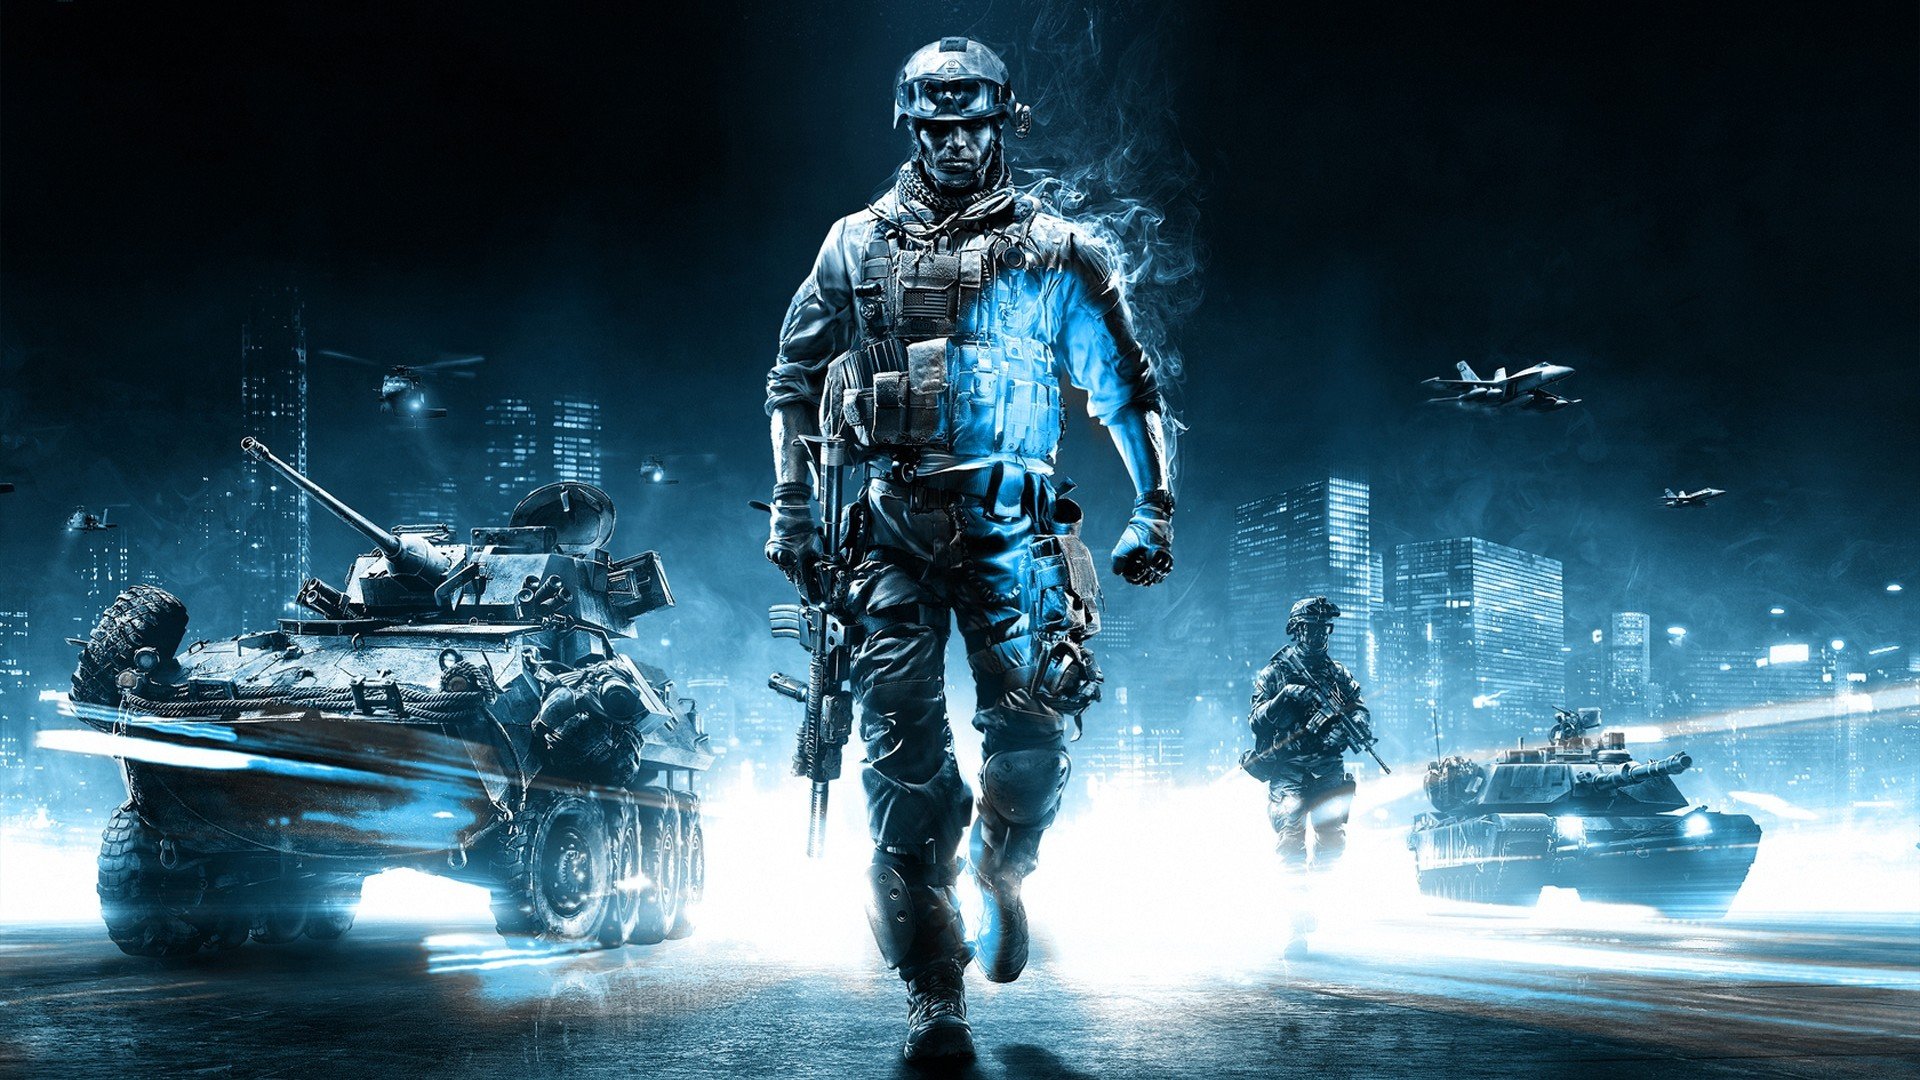 Hd Gaming Wallpaper 68 Pictures